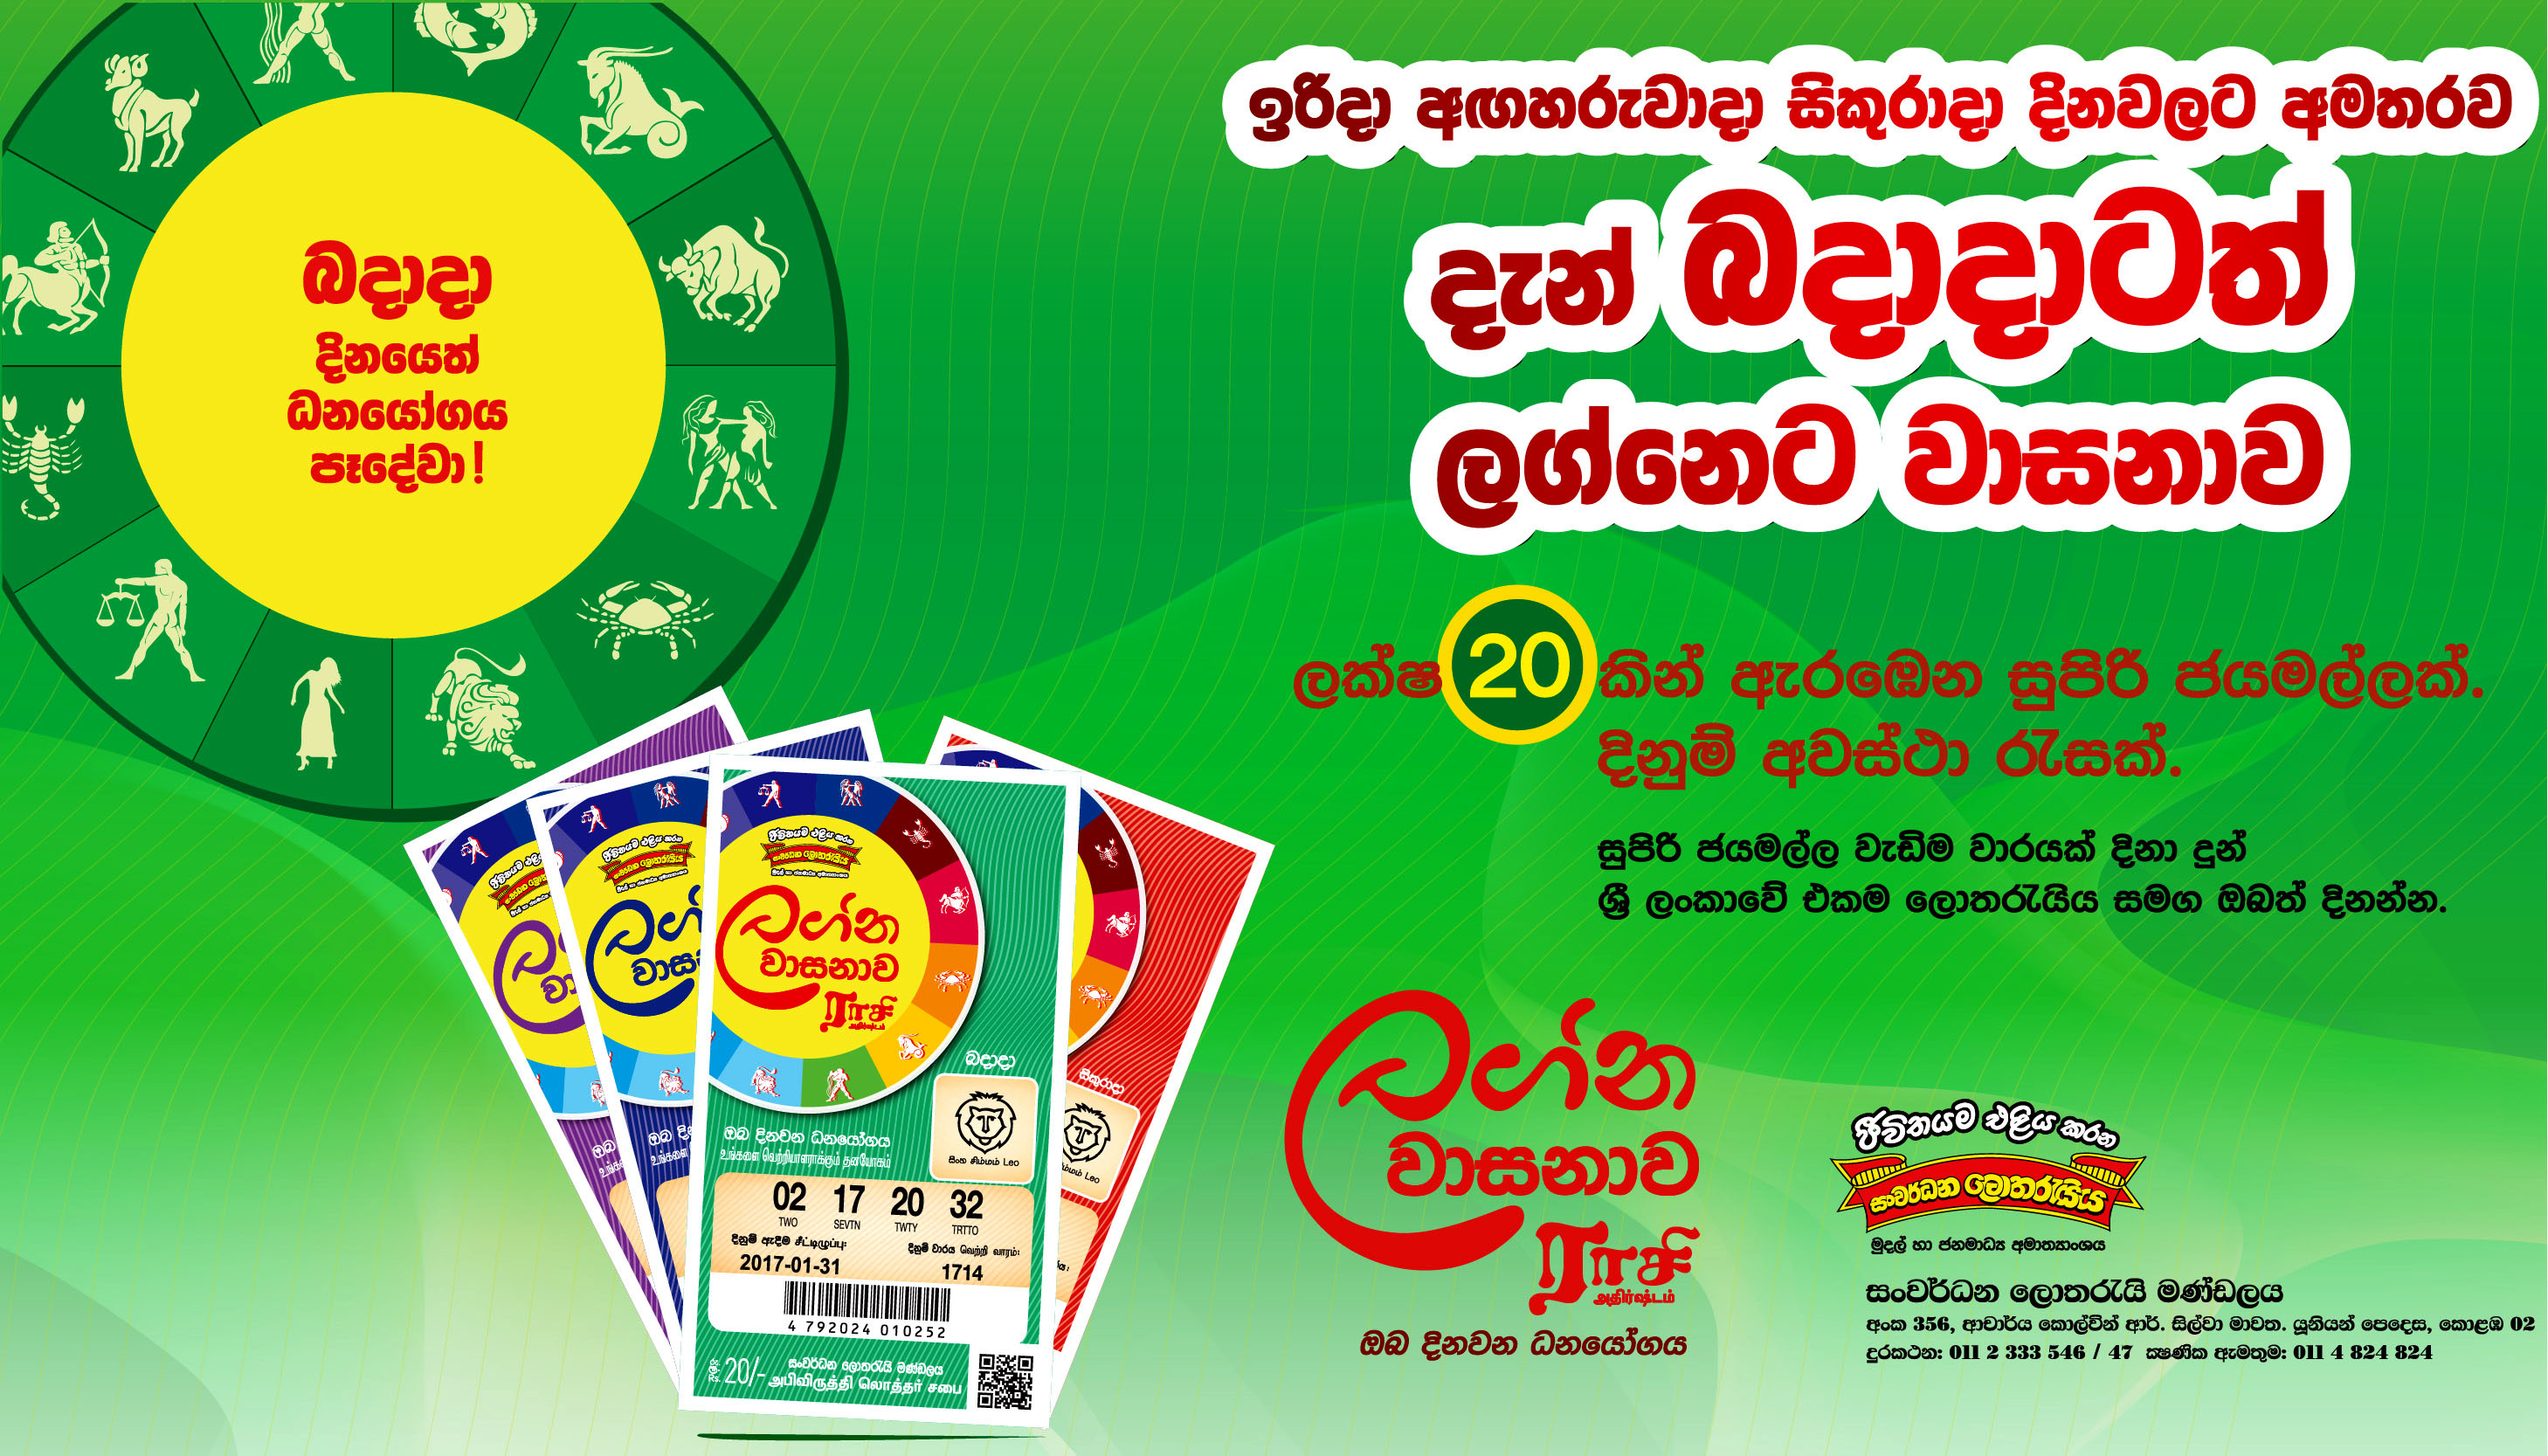 Lagna Wasana of Development Lottery – now on Wednesdays